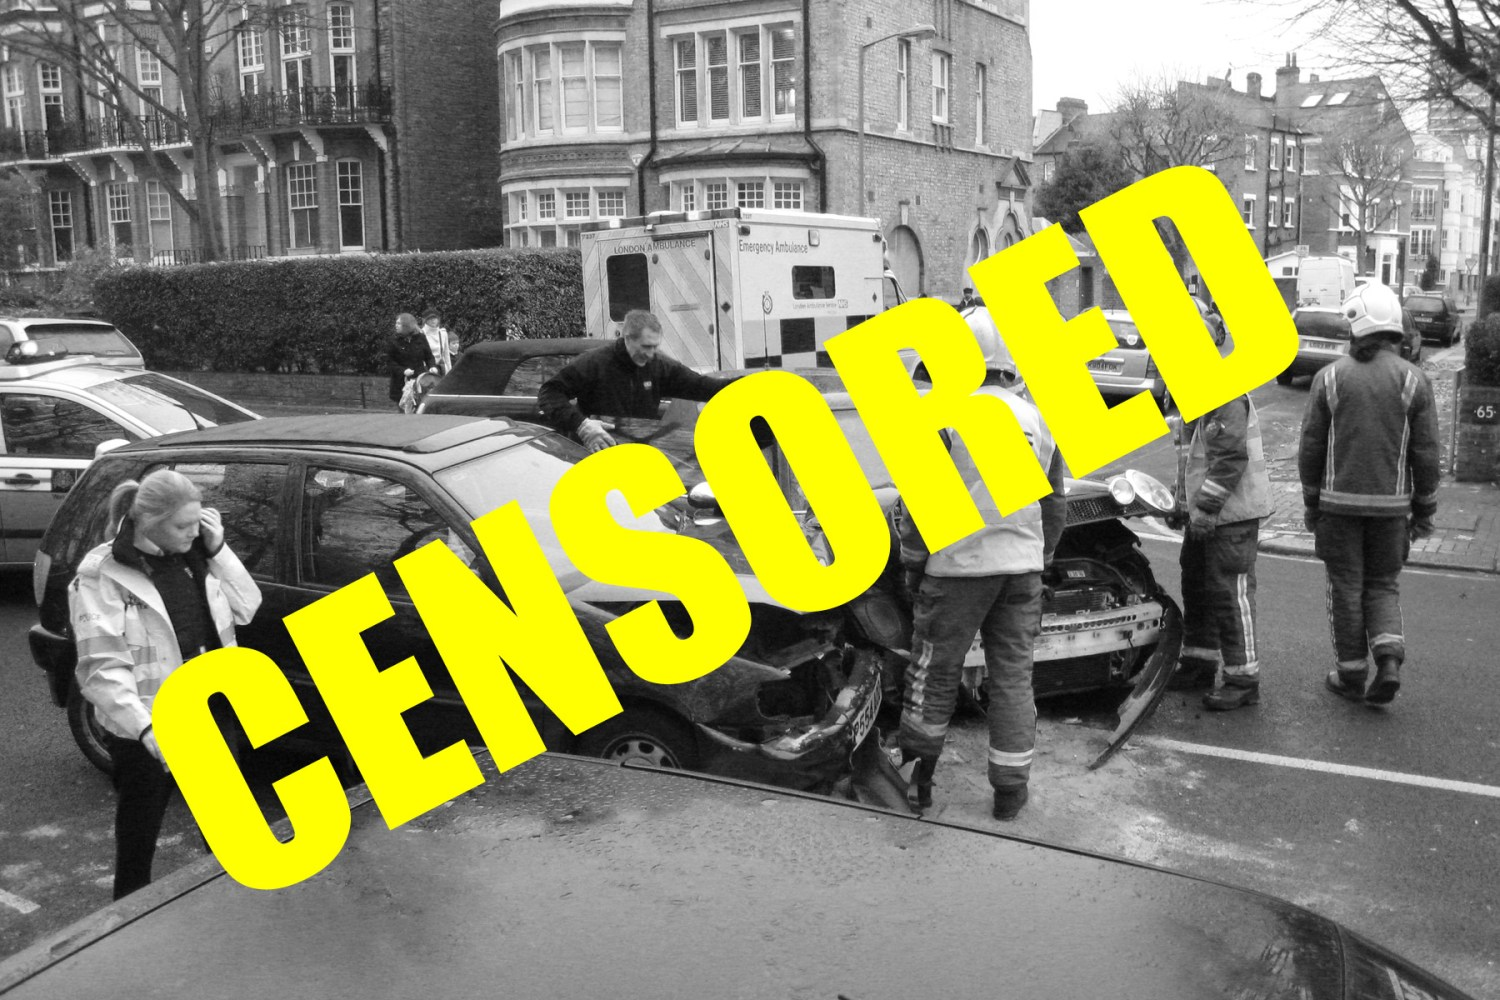 Blog: I don't want to see pictures of car crashes on Twitter